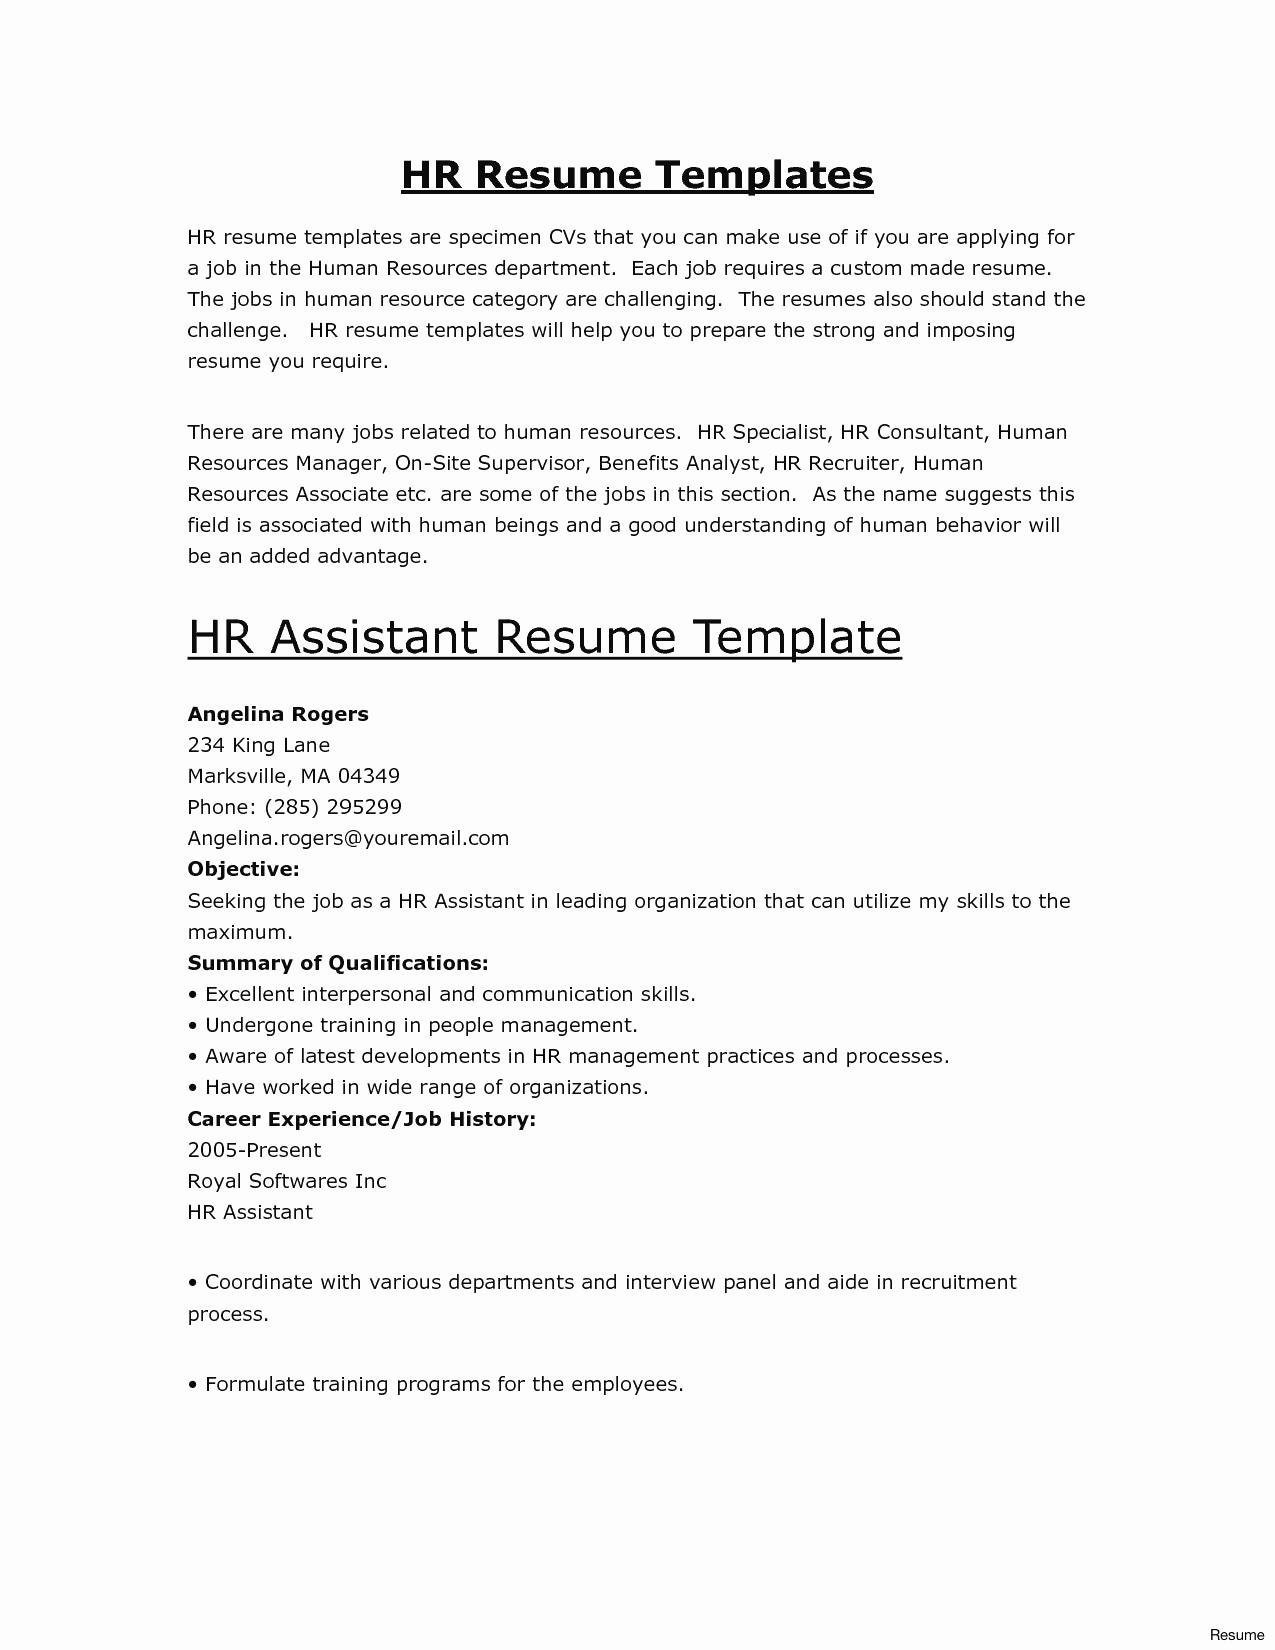 paralegal resume template example-Paralegal Resume Examples 23 Paralegal Resume Examples 13-b